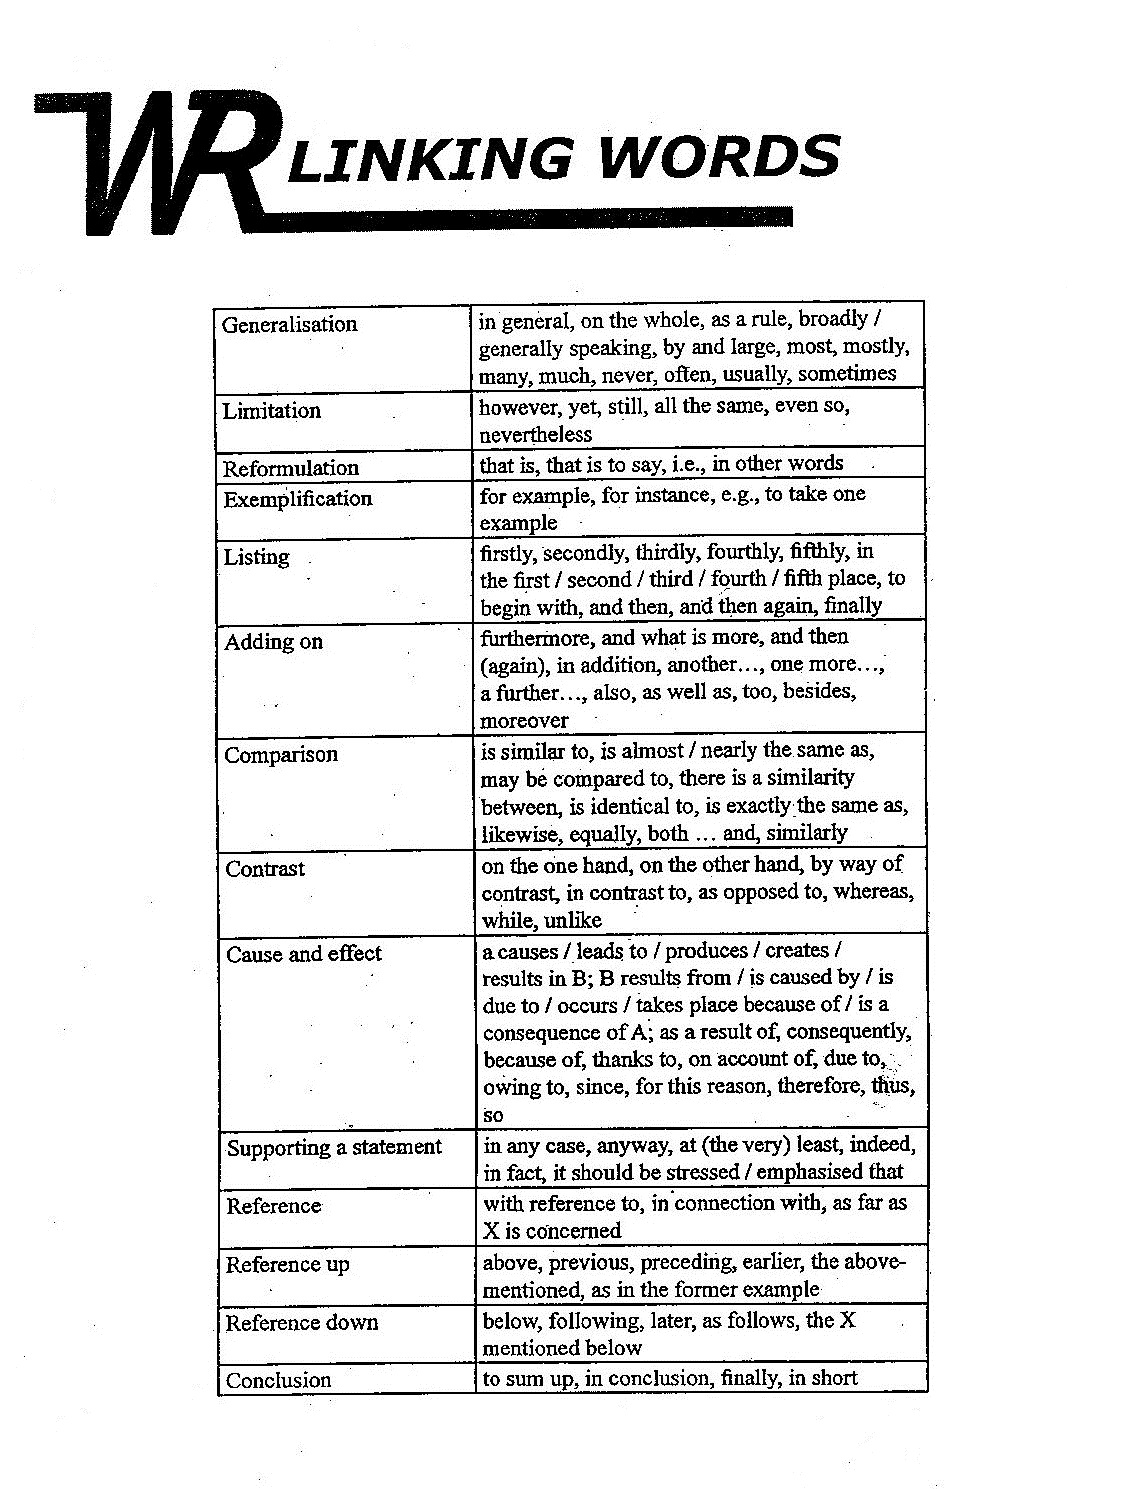 ese essay writing phrases  how to write ese essays white rabbit